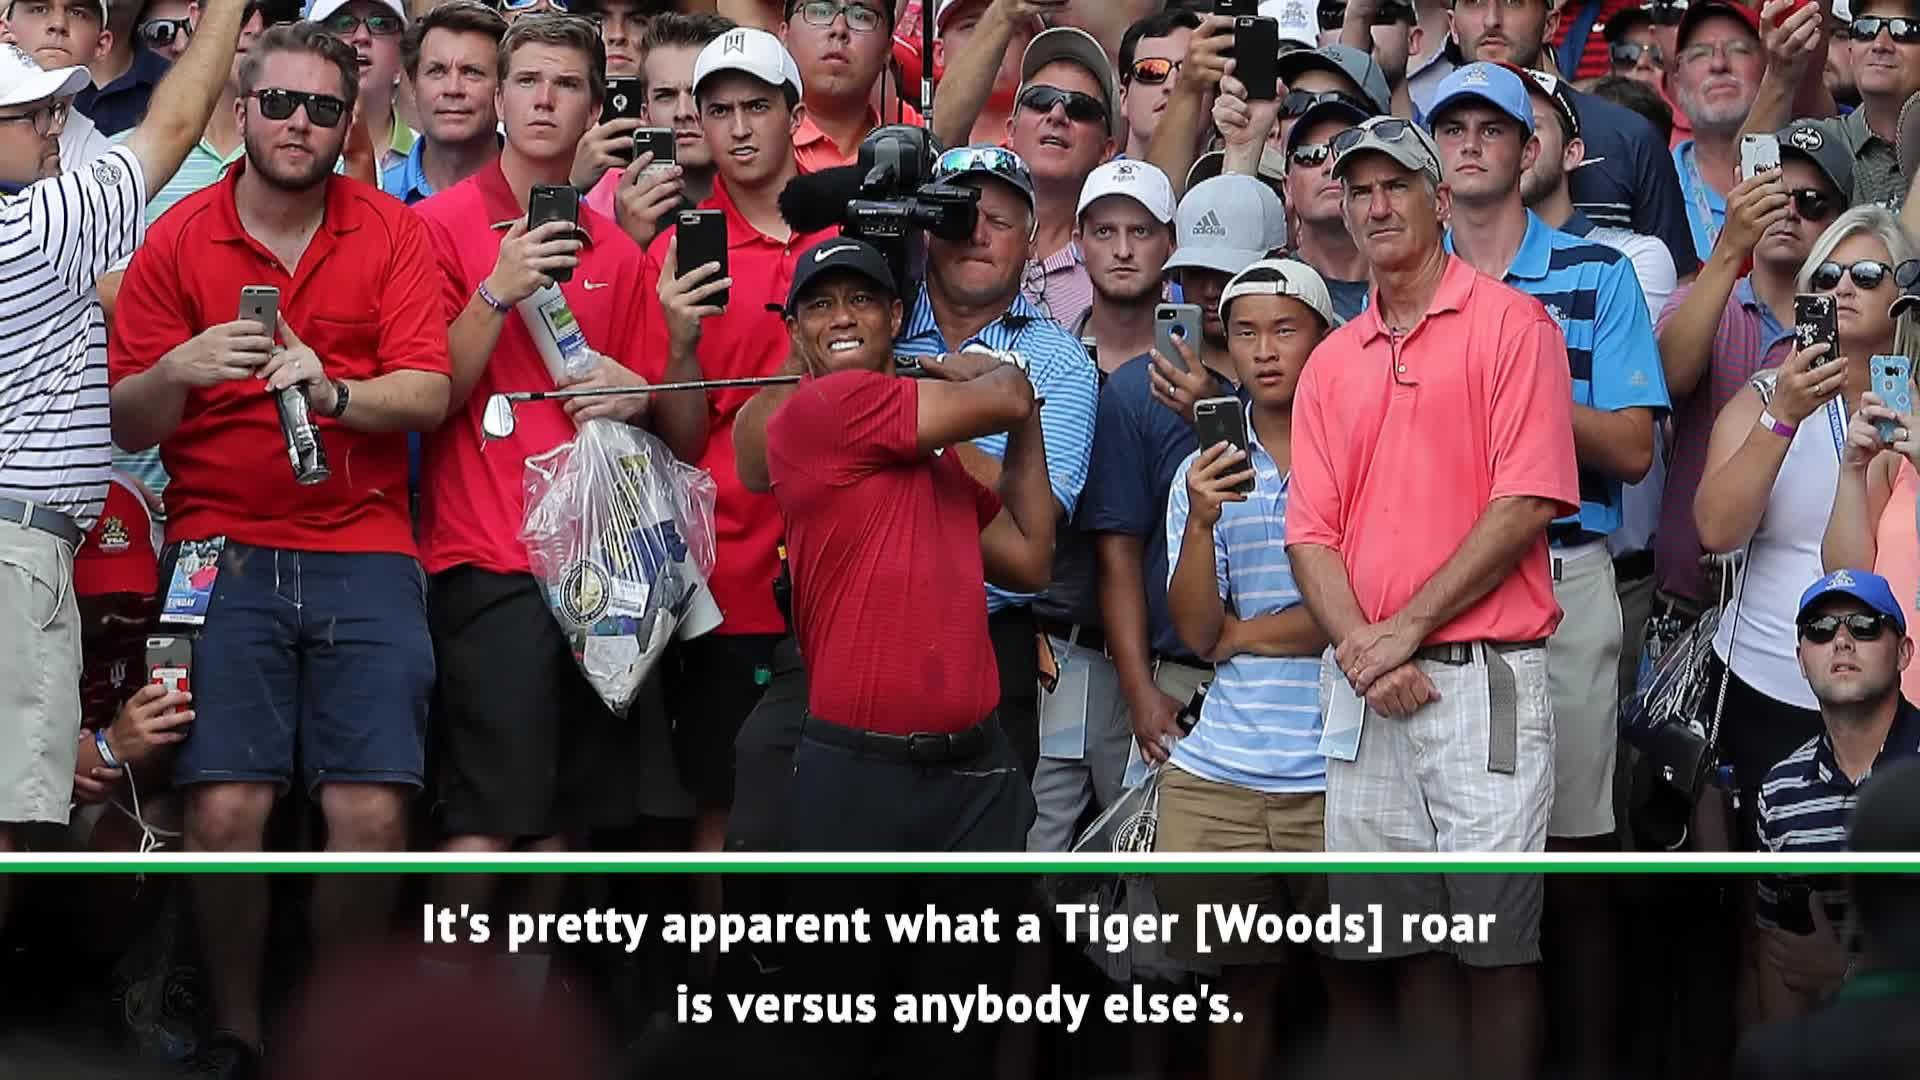 'Everybody knows a Tiger roar' - Thomas and Koepka reflect on Woods' PGA success